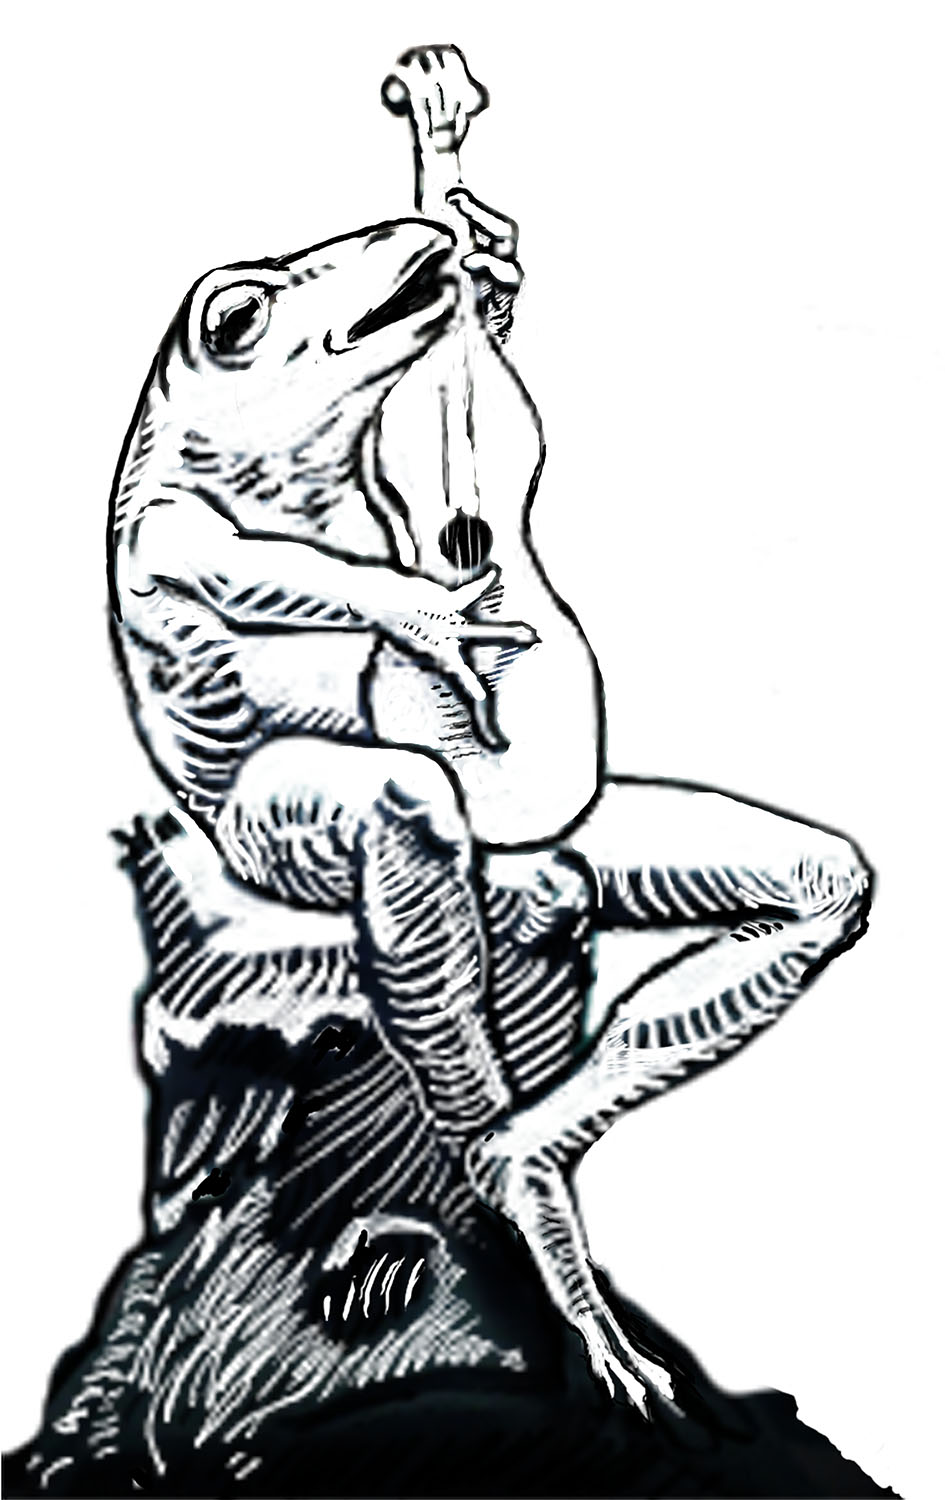 Singing Frog , 2016. Giclee print on Photographique paper.